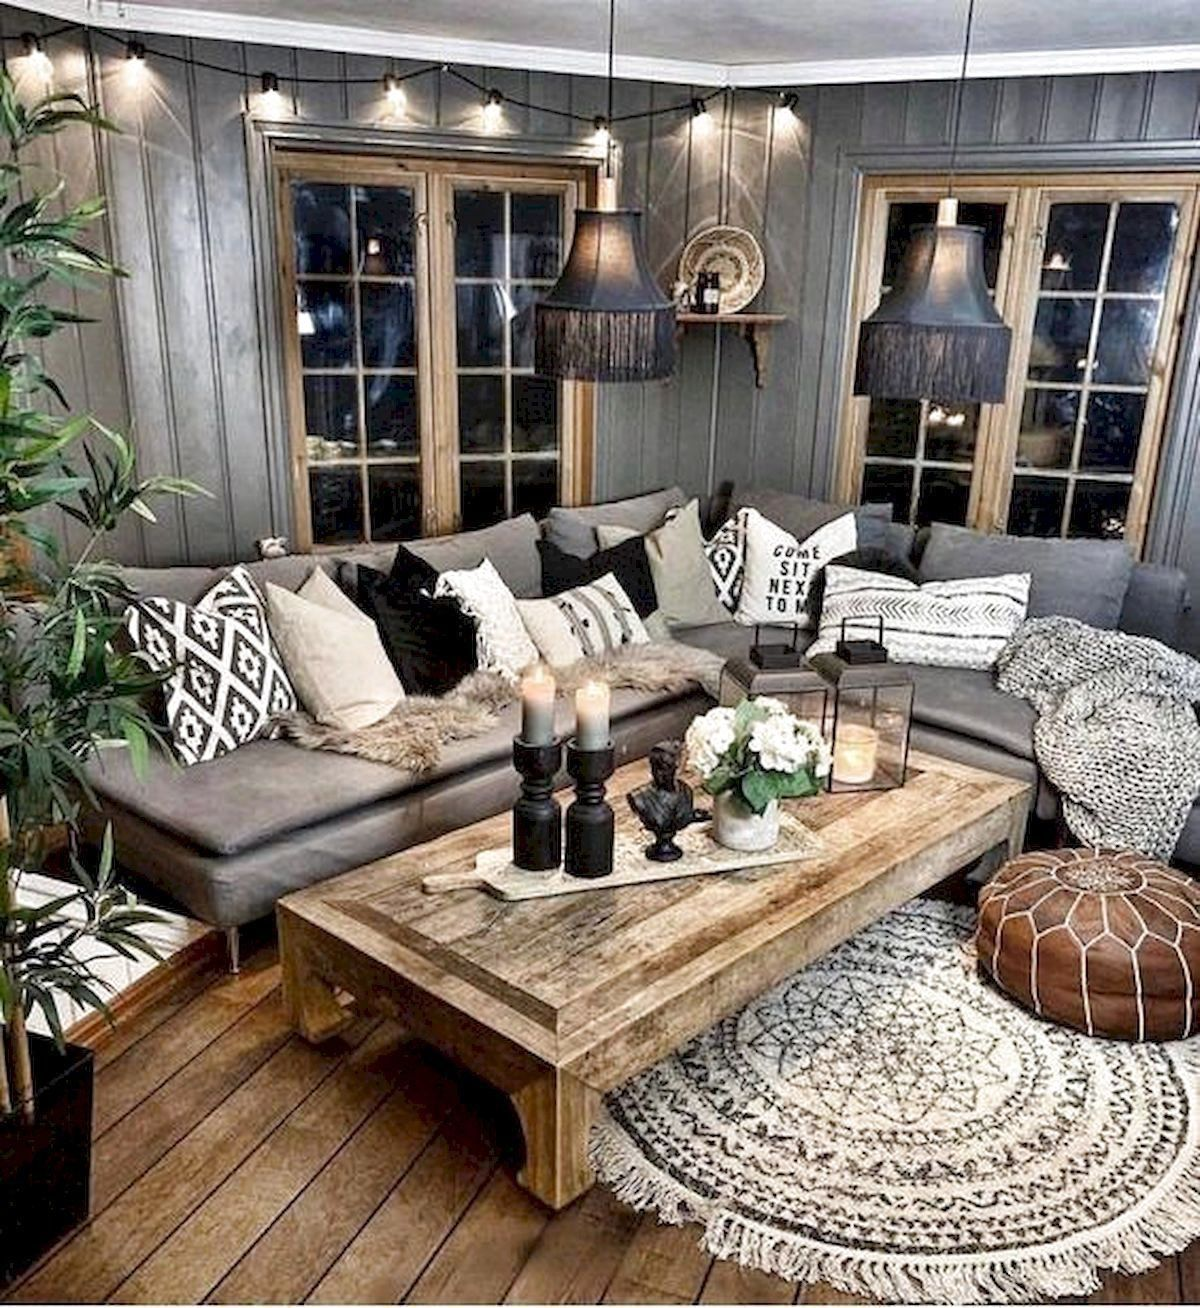 Mid Century Trends And Decor Inspirations In 2020 Farm House Living Room Modern Rustic Living Room Living Room Decor Apartment #rustic #grey #living #room